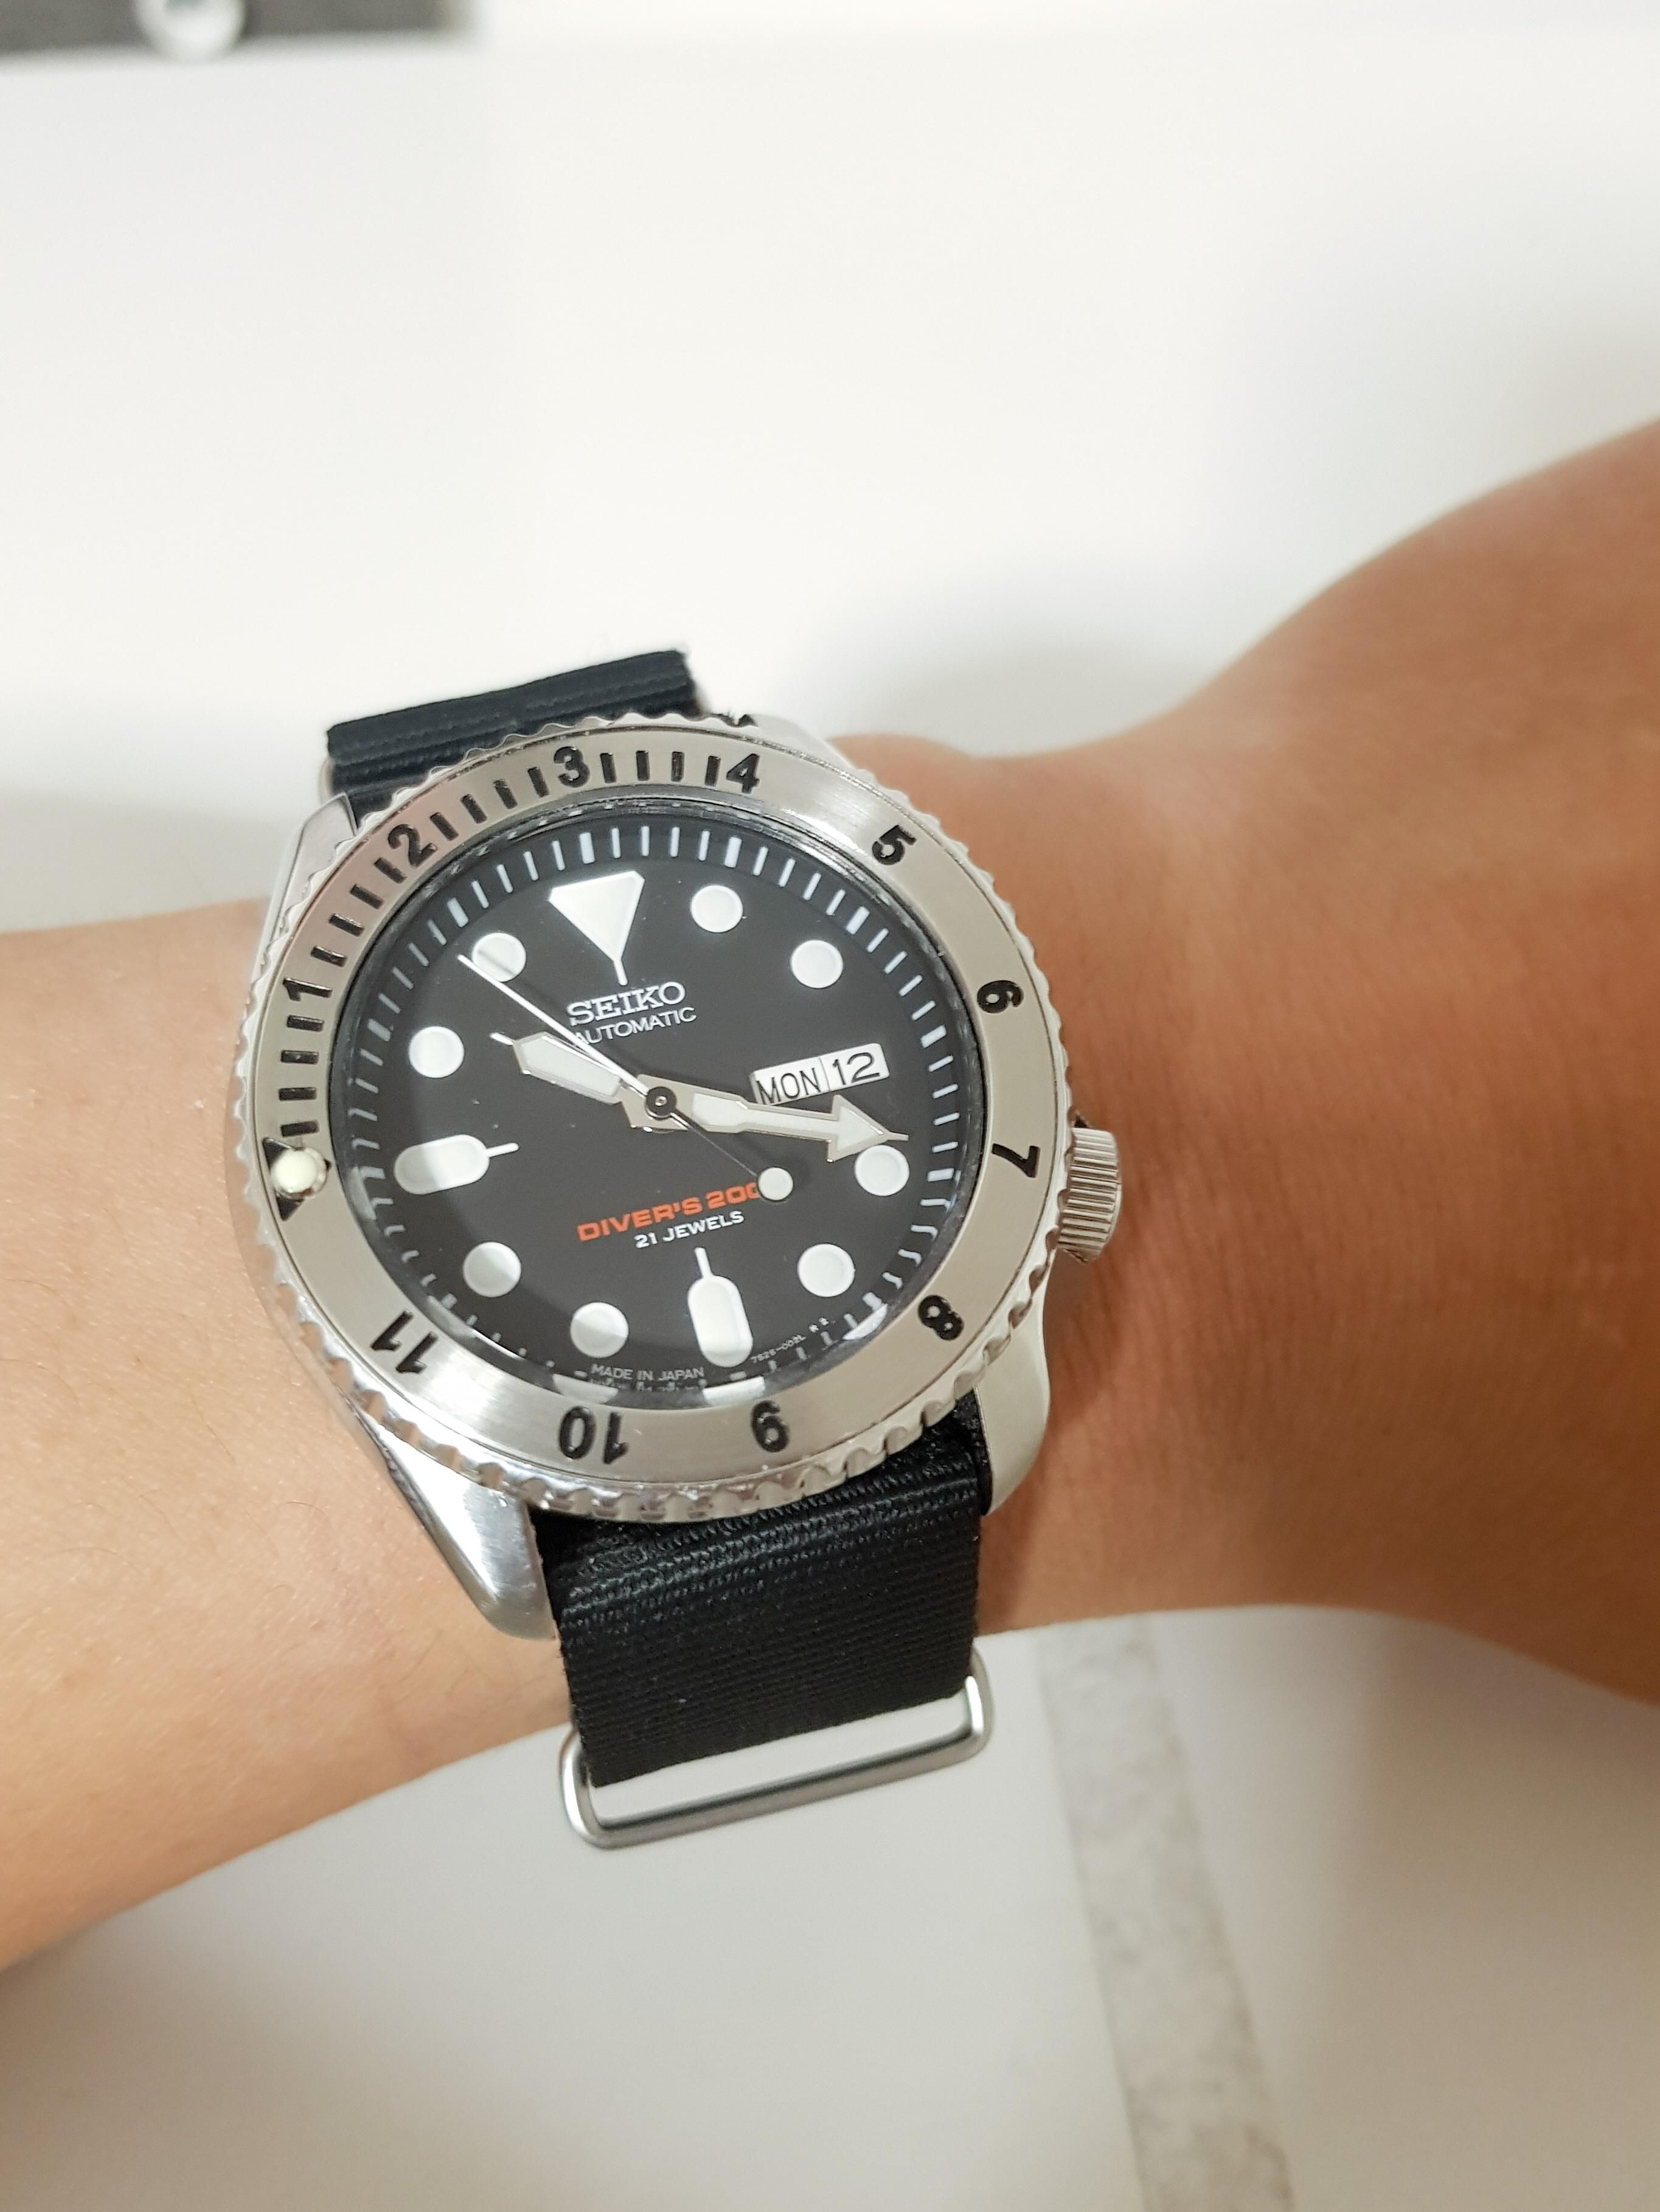 Seiko] SKX007 modded with steel GMT bezel | Watches in 2019 | Seiko